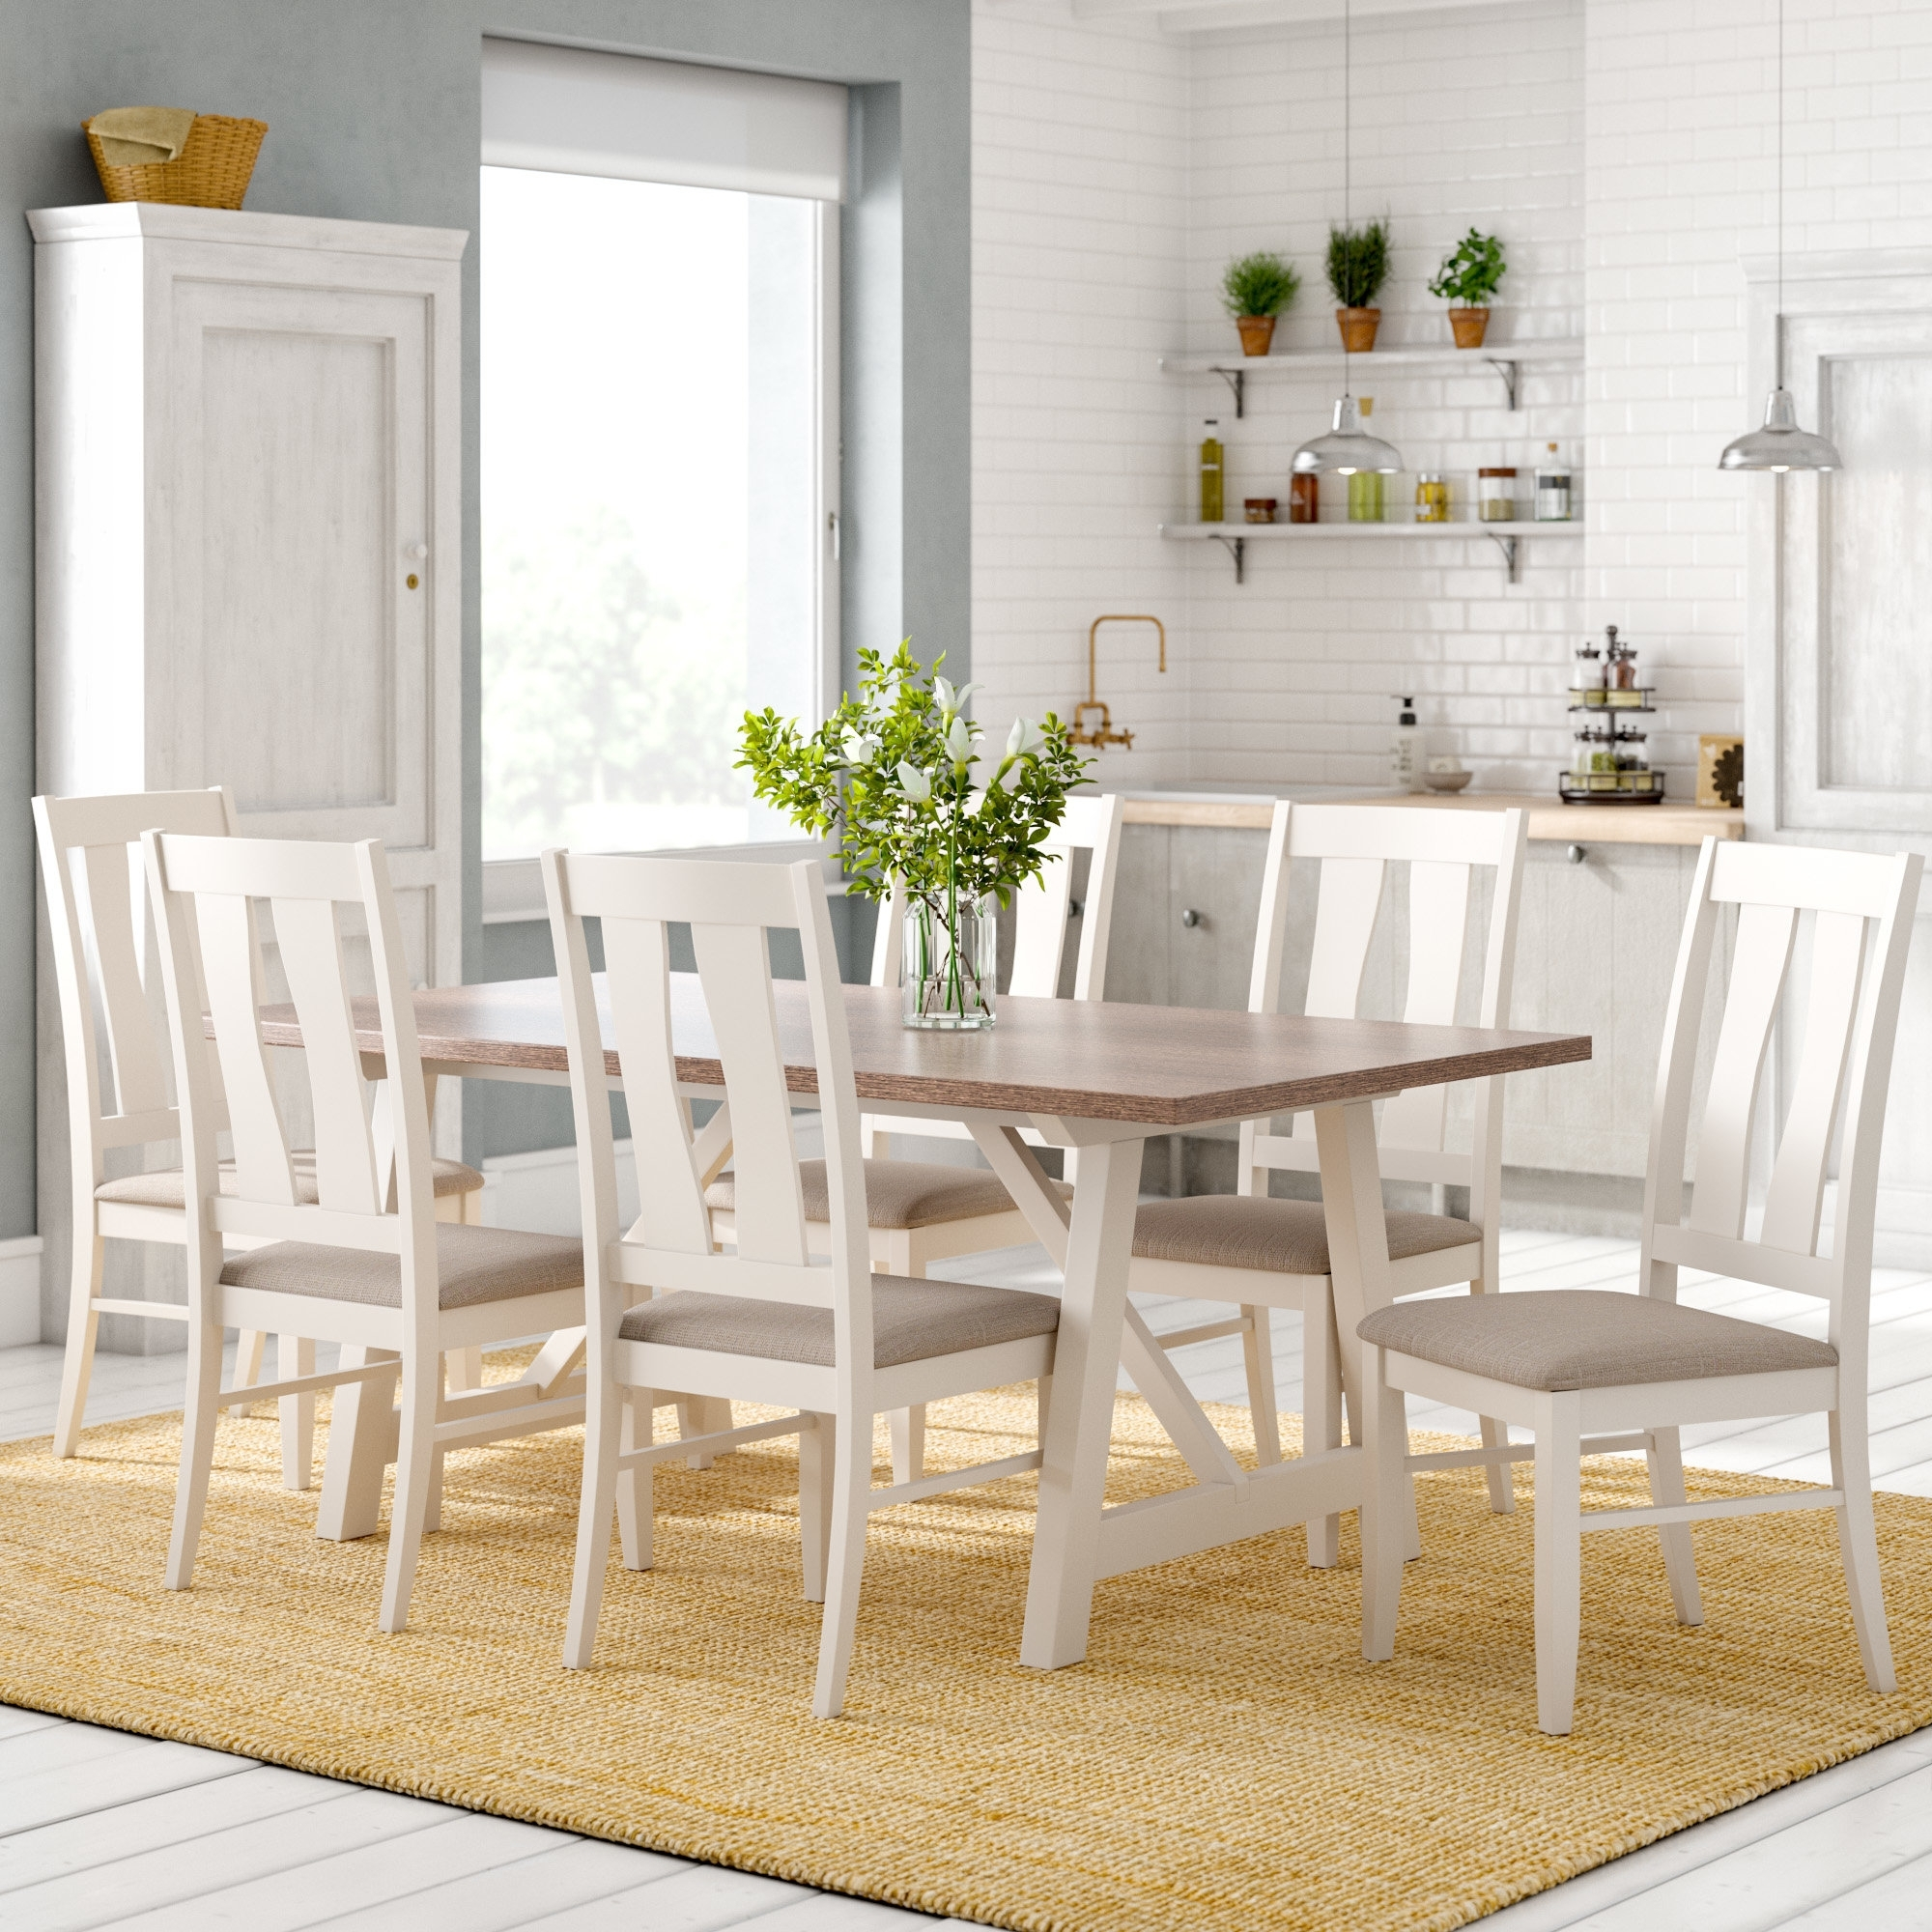 Most Popular Laurel Foundry Lombardy Dining Table And 6 Chairs & Reviews Inside Wood Dining Tables And 6 Chairs (Gallery 23 of 25)